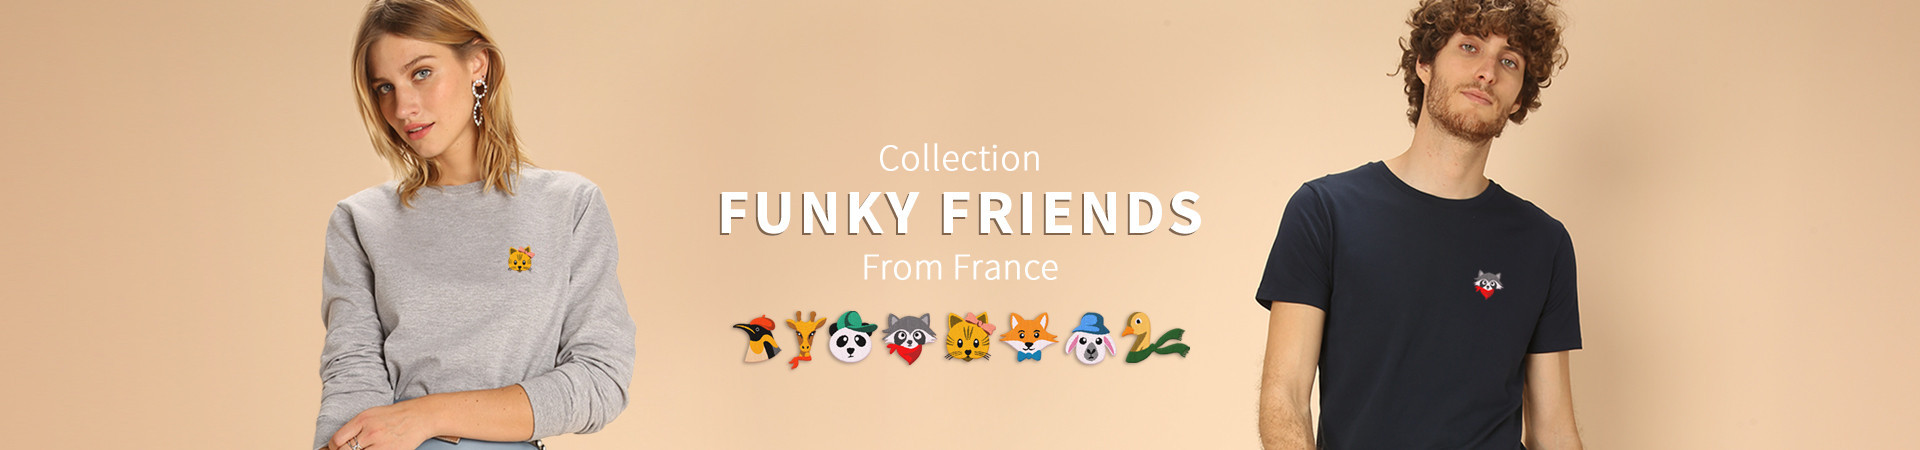 Funky Friends